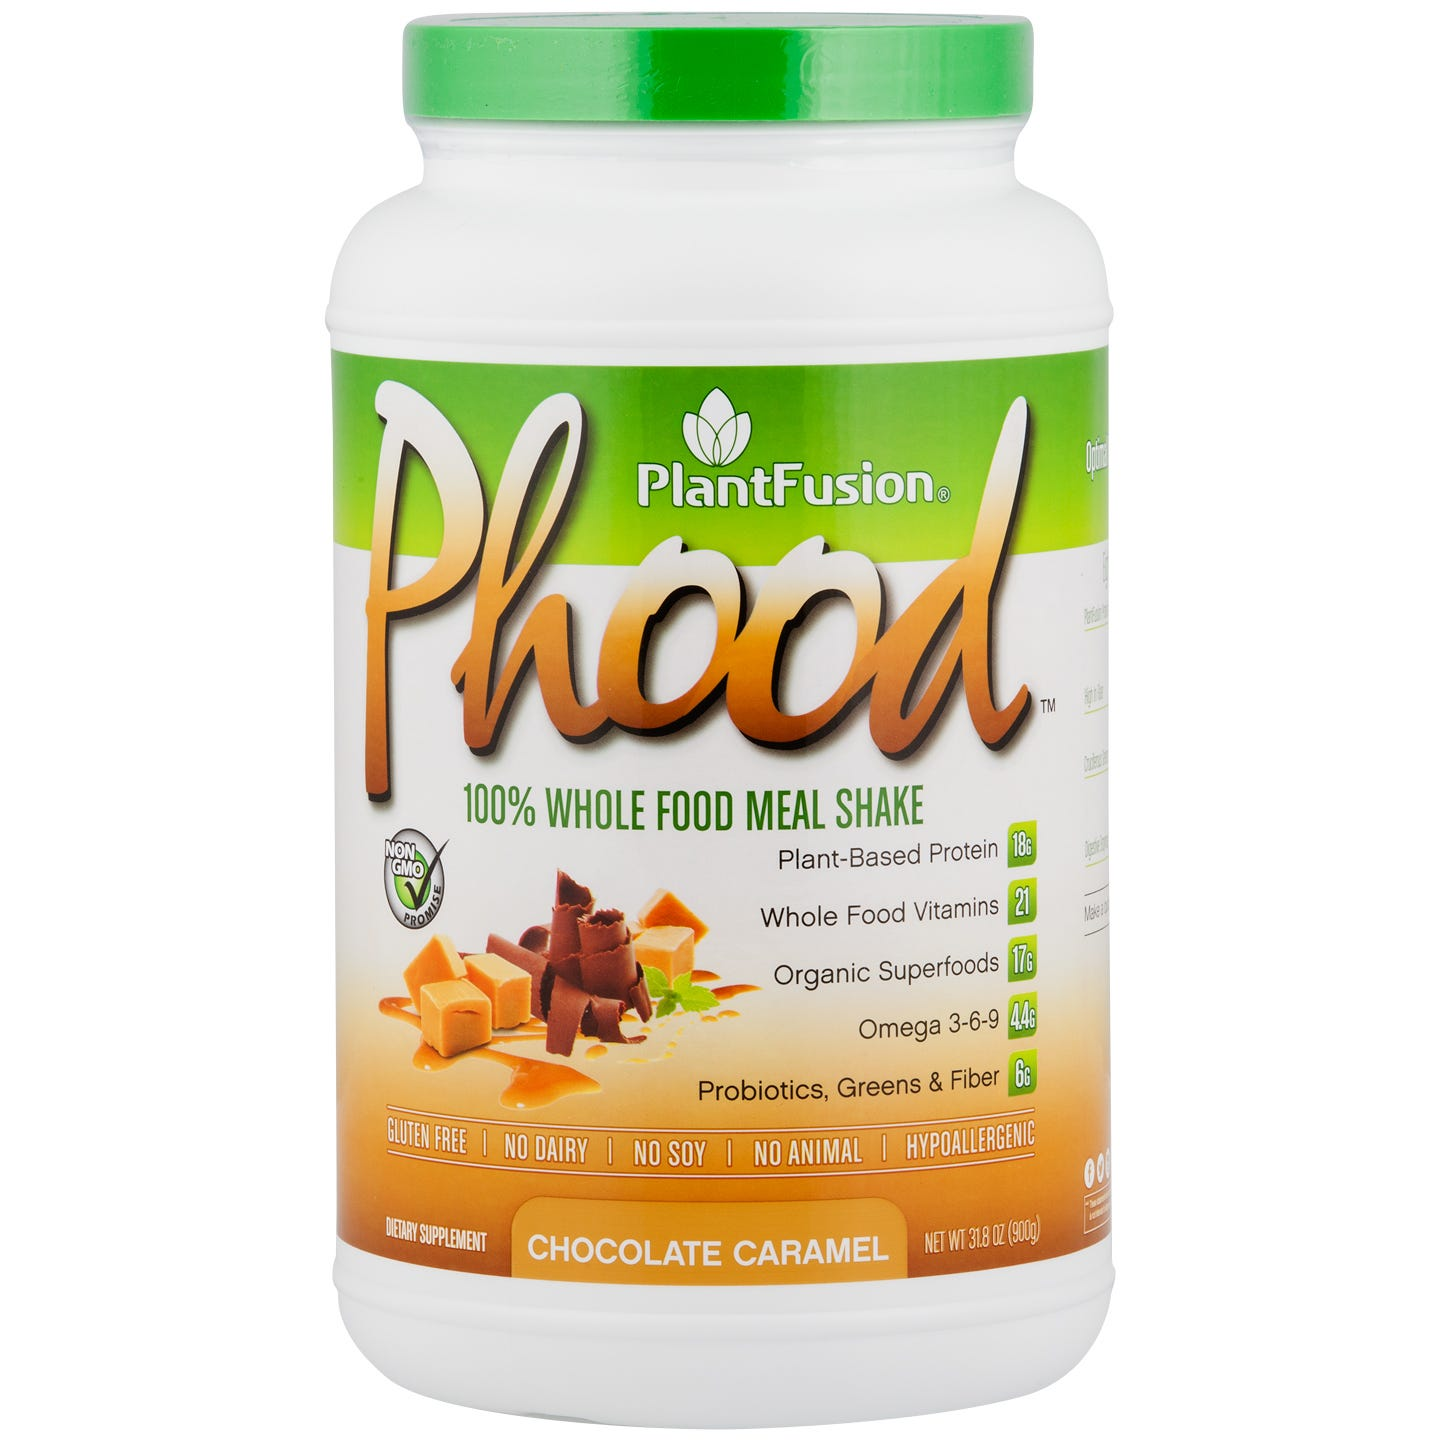 PlantFusion Meal Shake Chocolate Caramel 2lb, Phood - Rapid Diet Weight Loss Products Shop